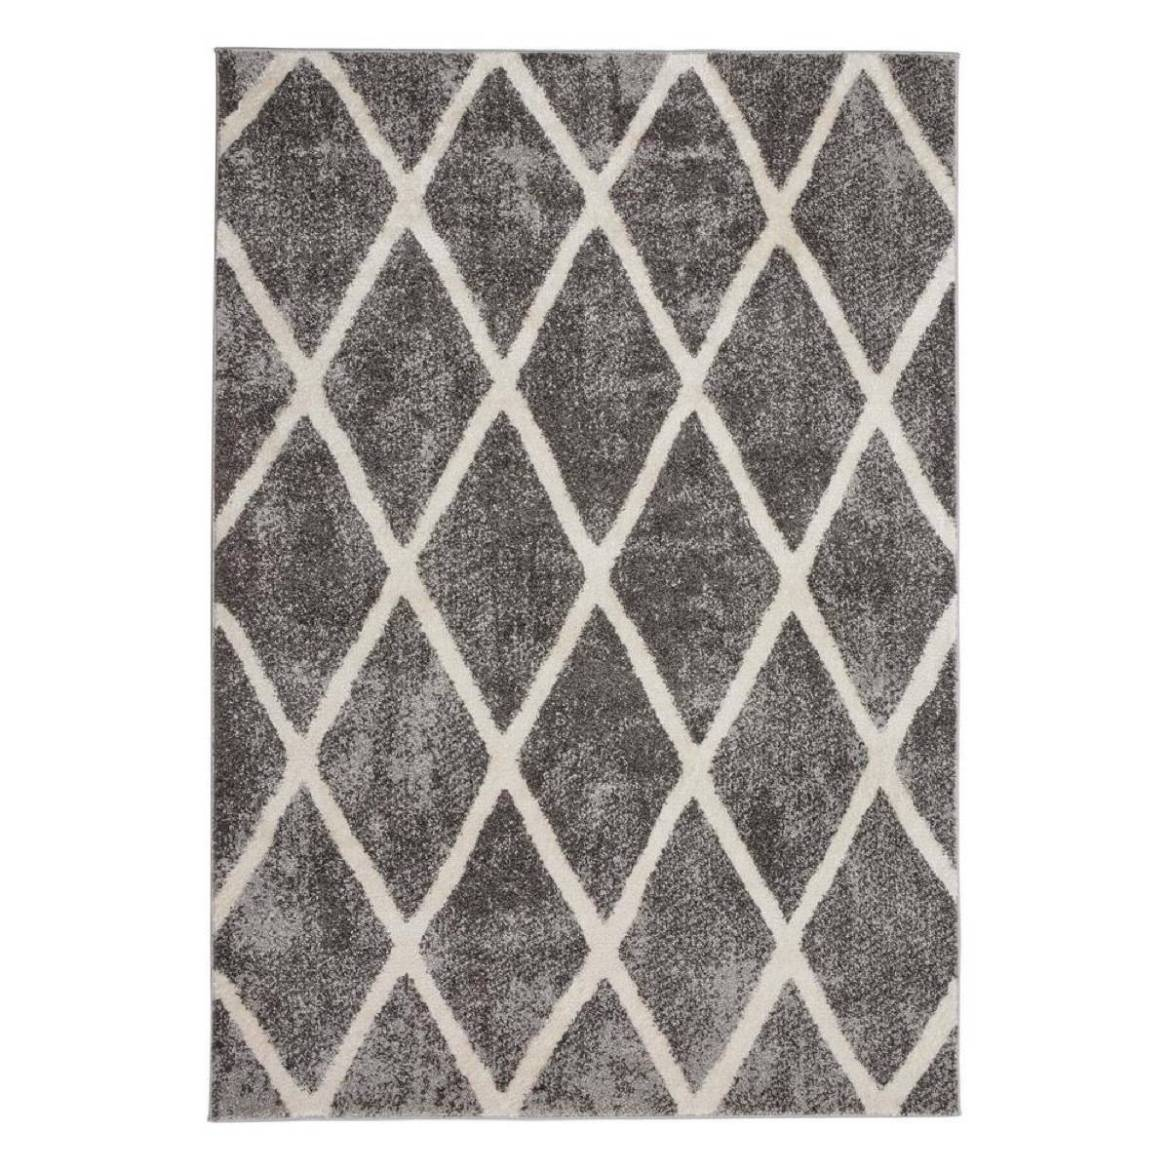 Gray diamond rug from The Home Depot